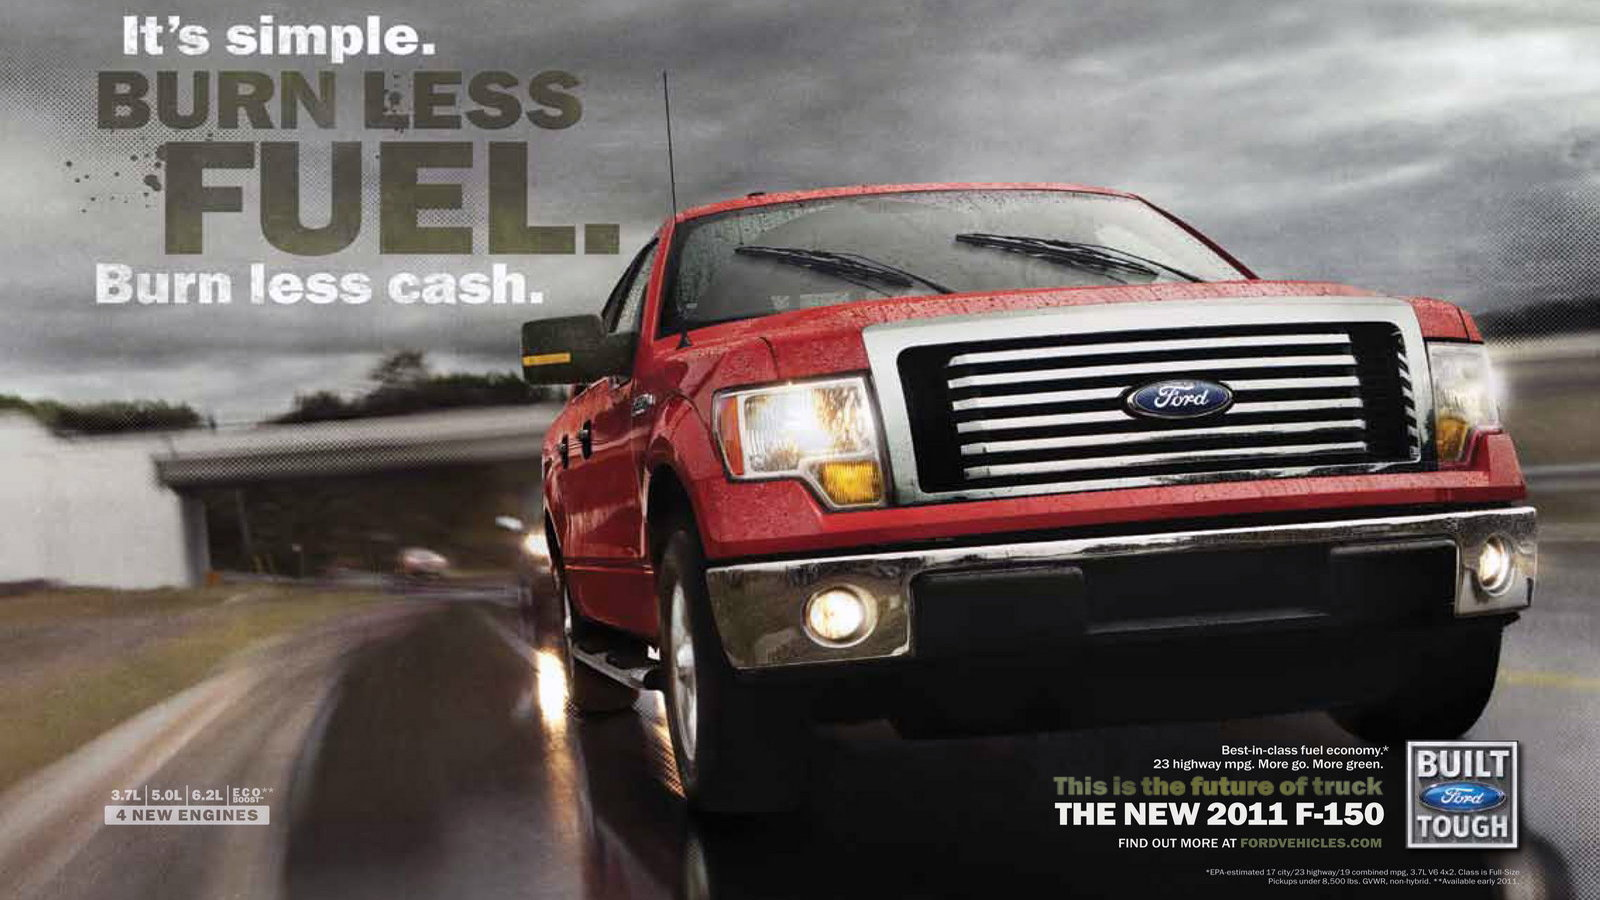 2011 Ford F-150 (3.7l/auto 6sp) - 17 city/23 highway